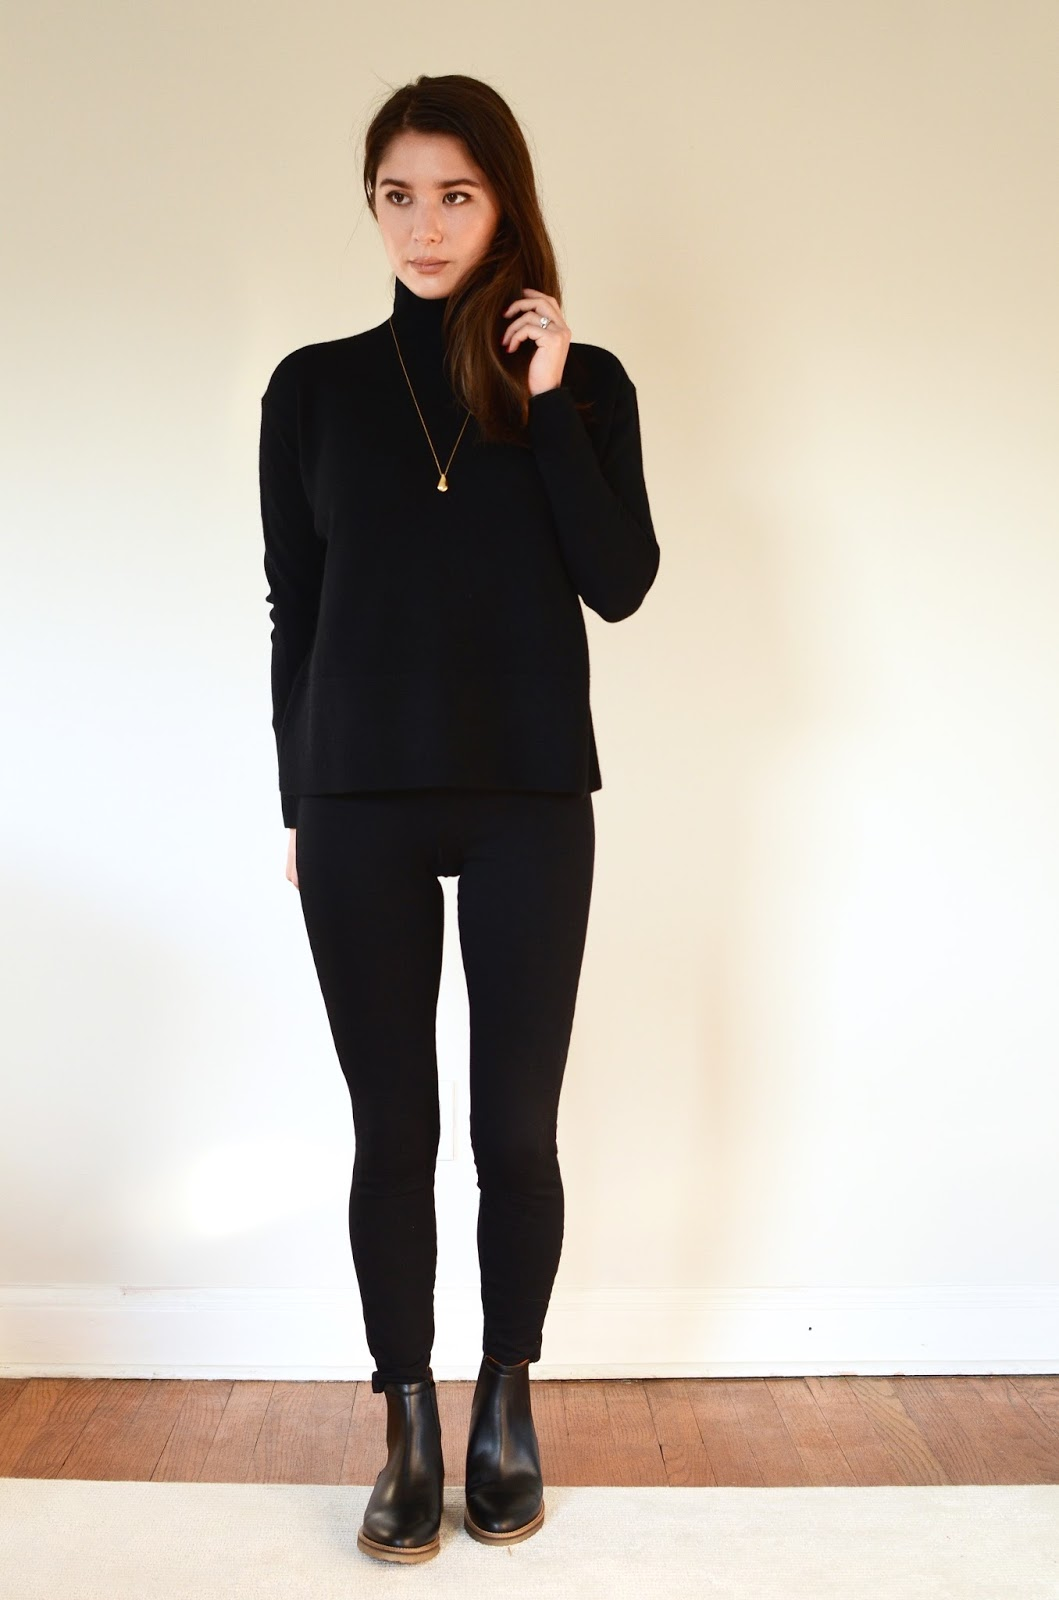 Everlane Brixton Boot Cashmere Square Turtleneck Review Photos Sizing Fit Information